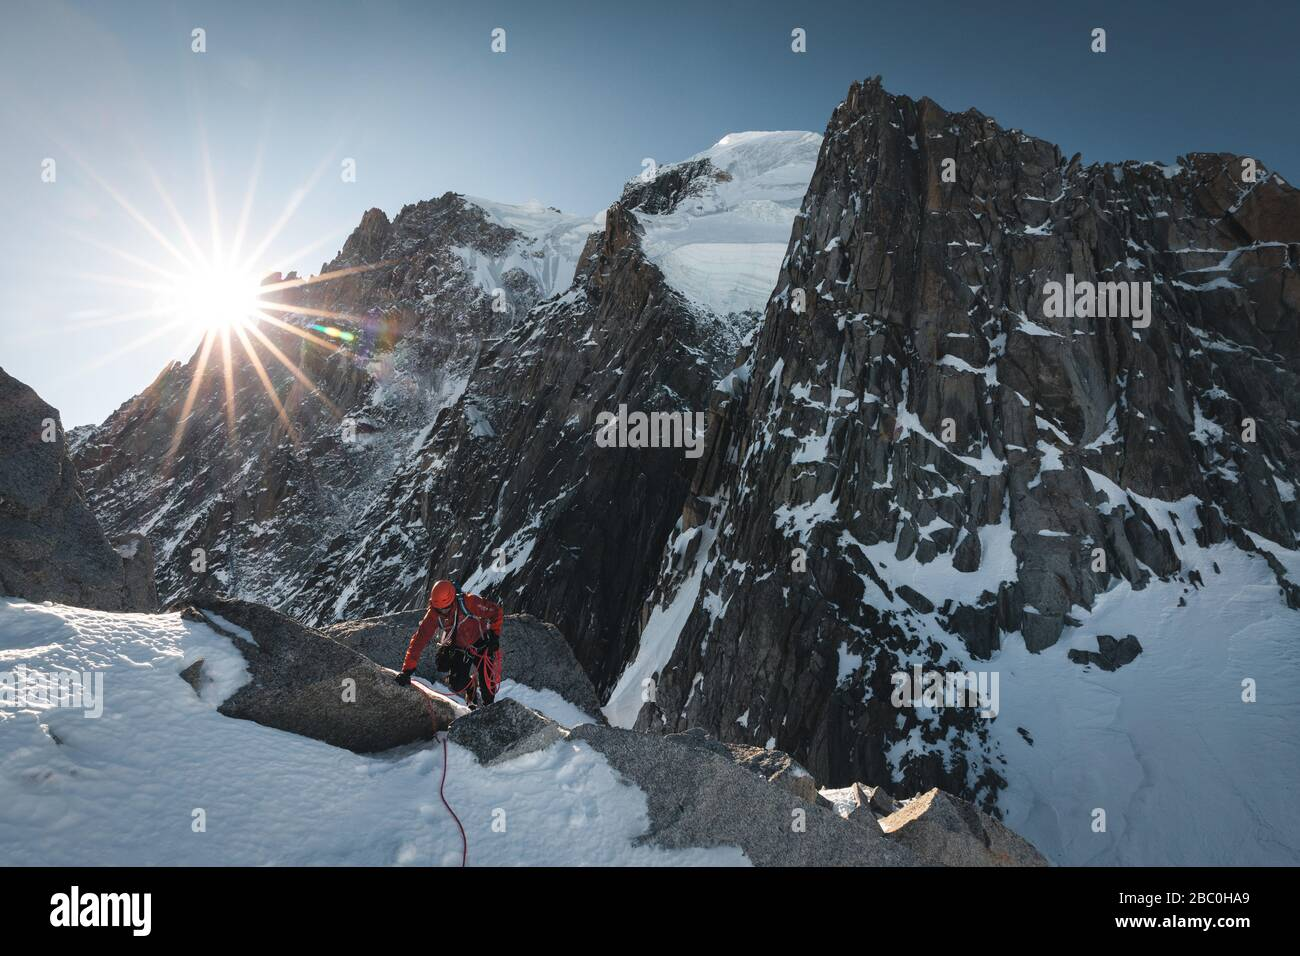 GUIDE ON THE RIDGE OF THE POINTES LACHENAL AT THE FOOT OF THE SERACS DU MONT BLANC DU TACUL, ONT-BLANC MOUNTAIN RANGE, CHAMONIX-MONT-BLANC, HAUTE-SAVOIE (74), FRANCE Stock Photo